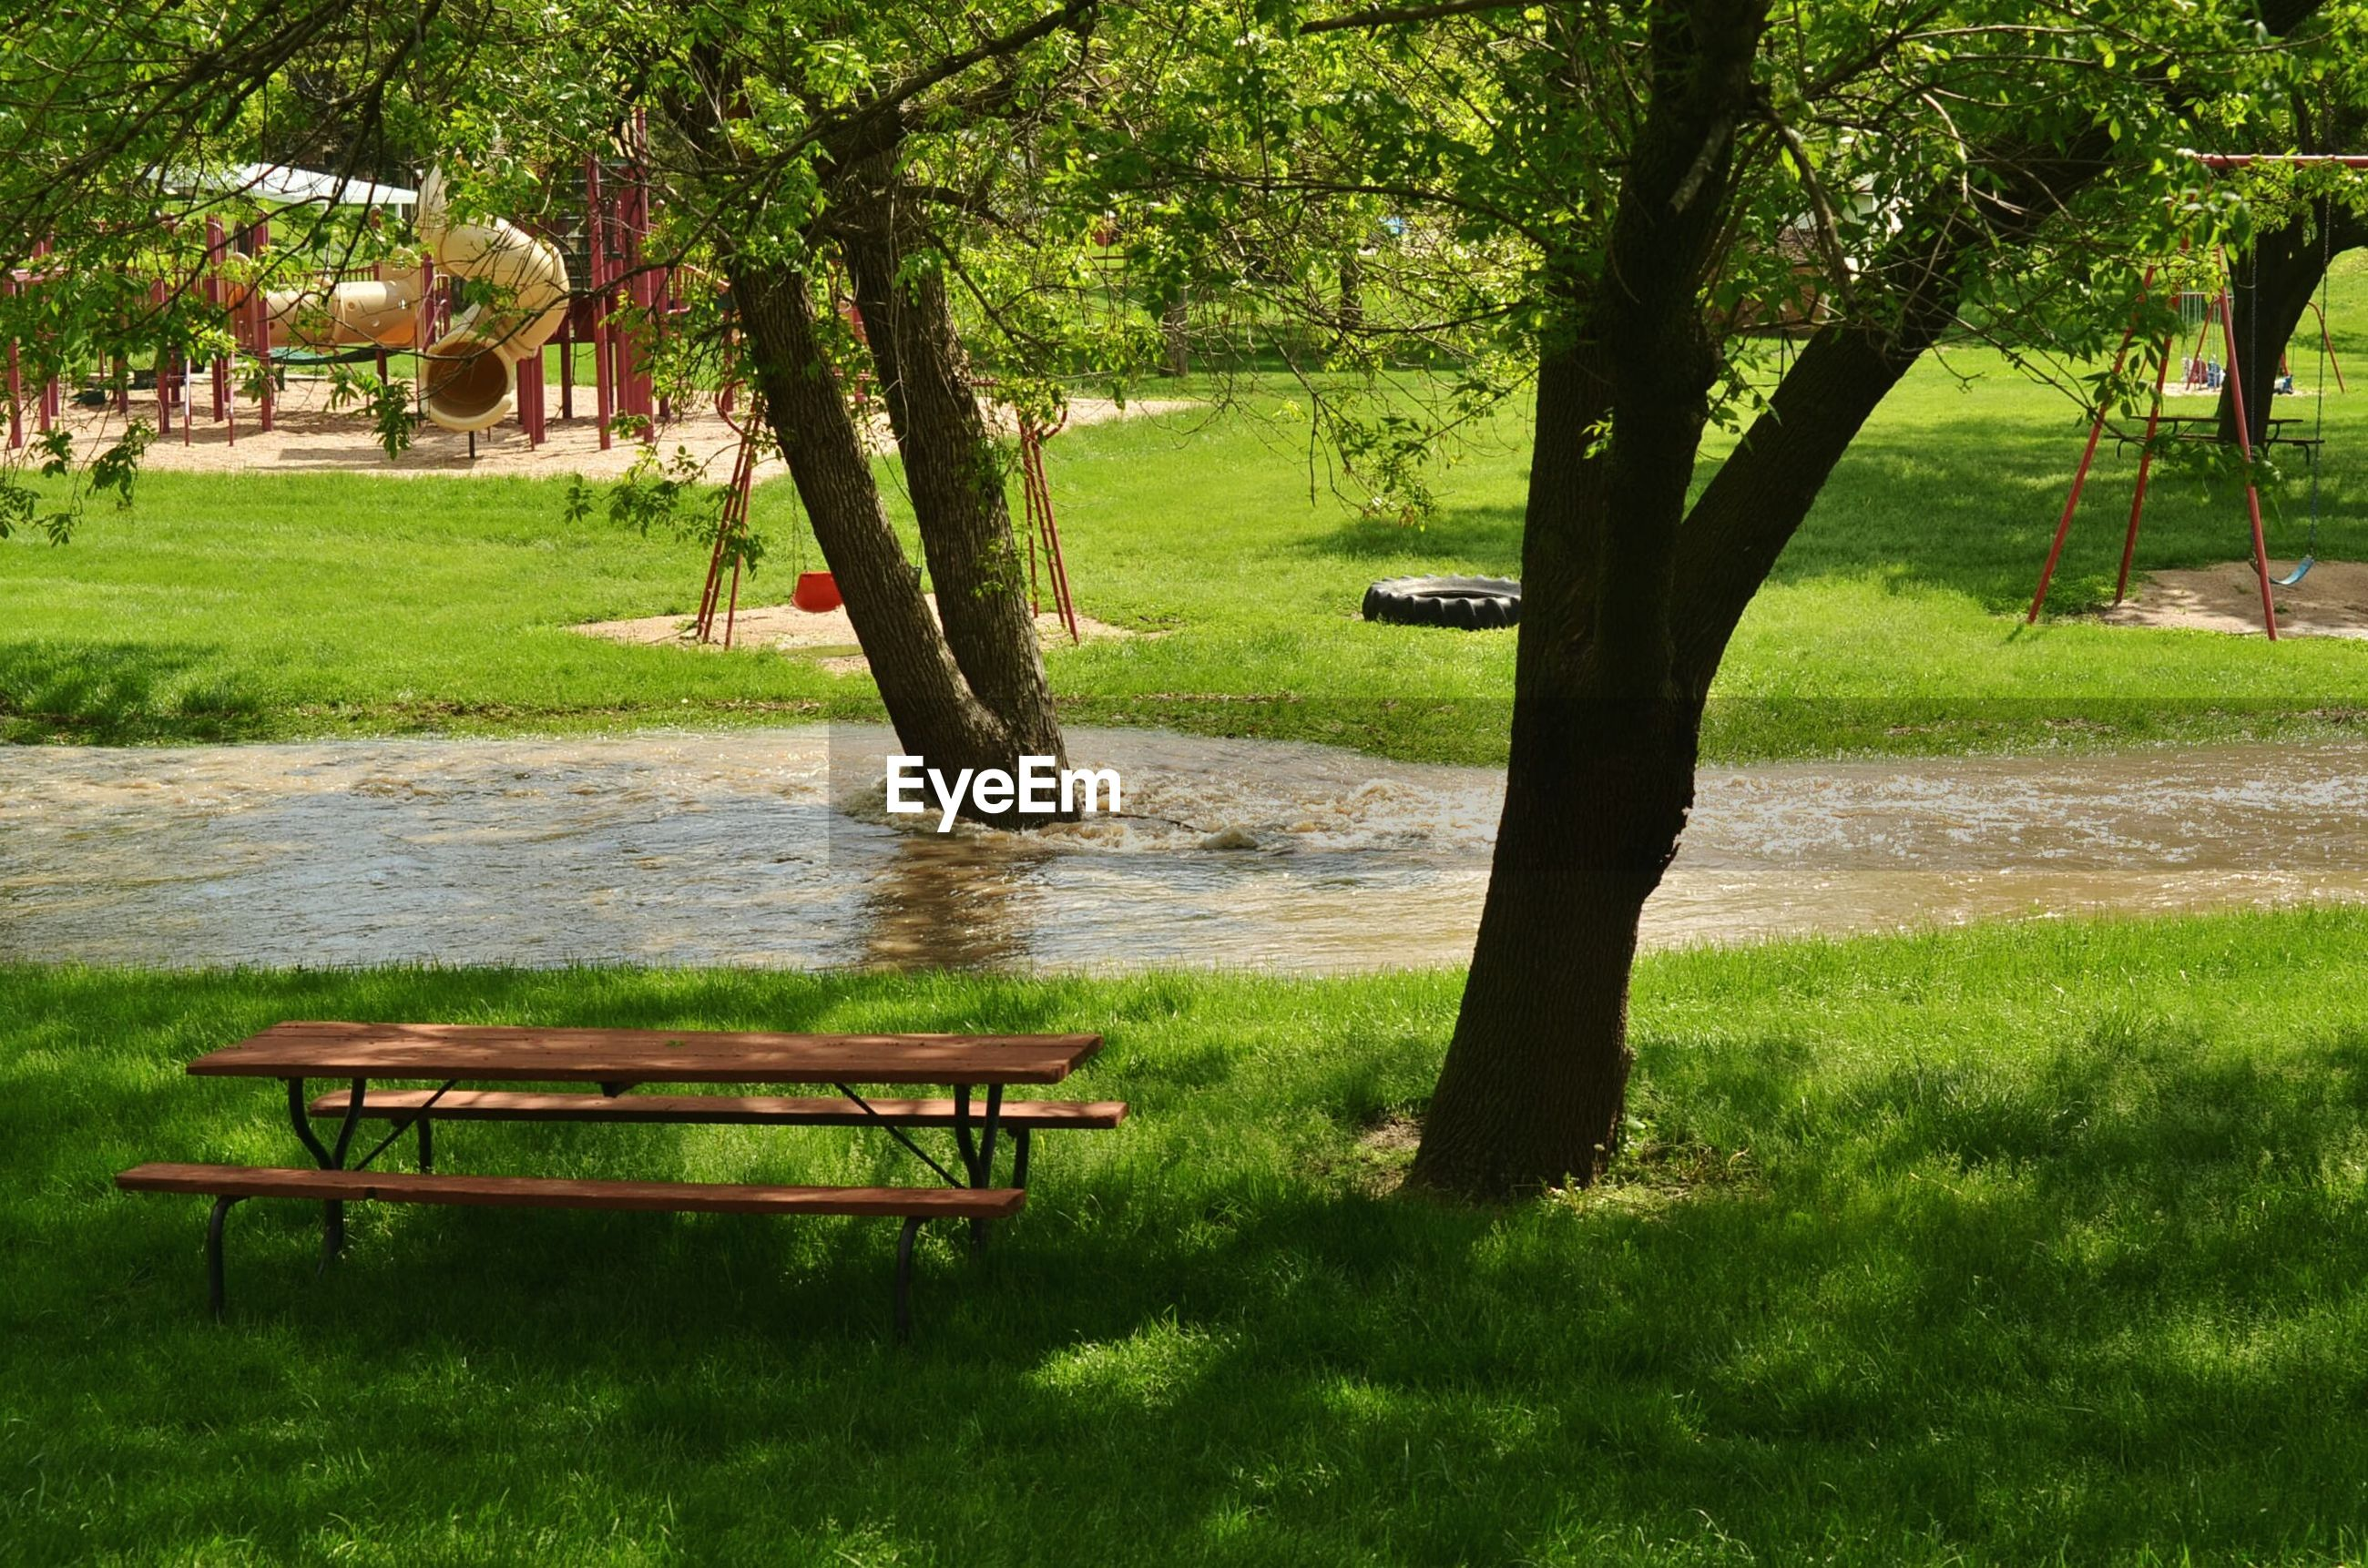 Empty picnic bench in park